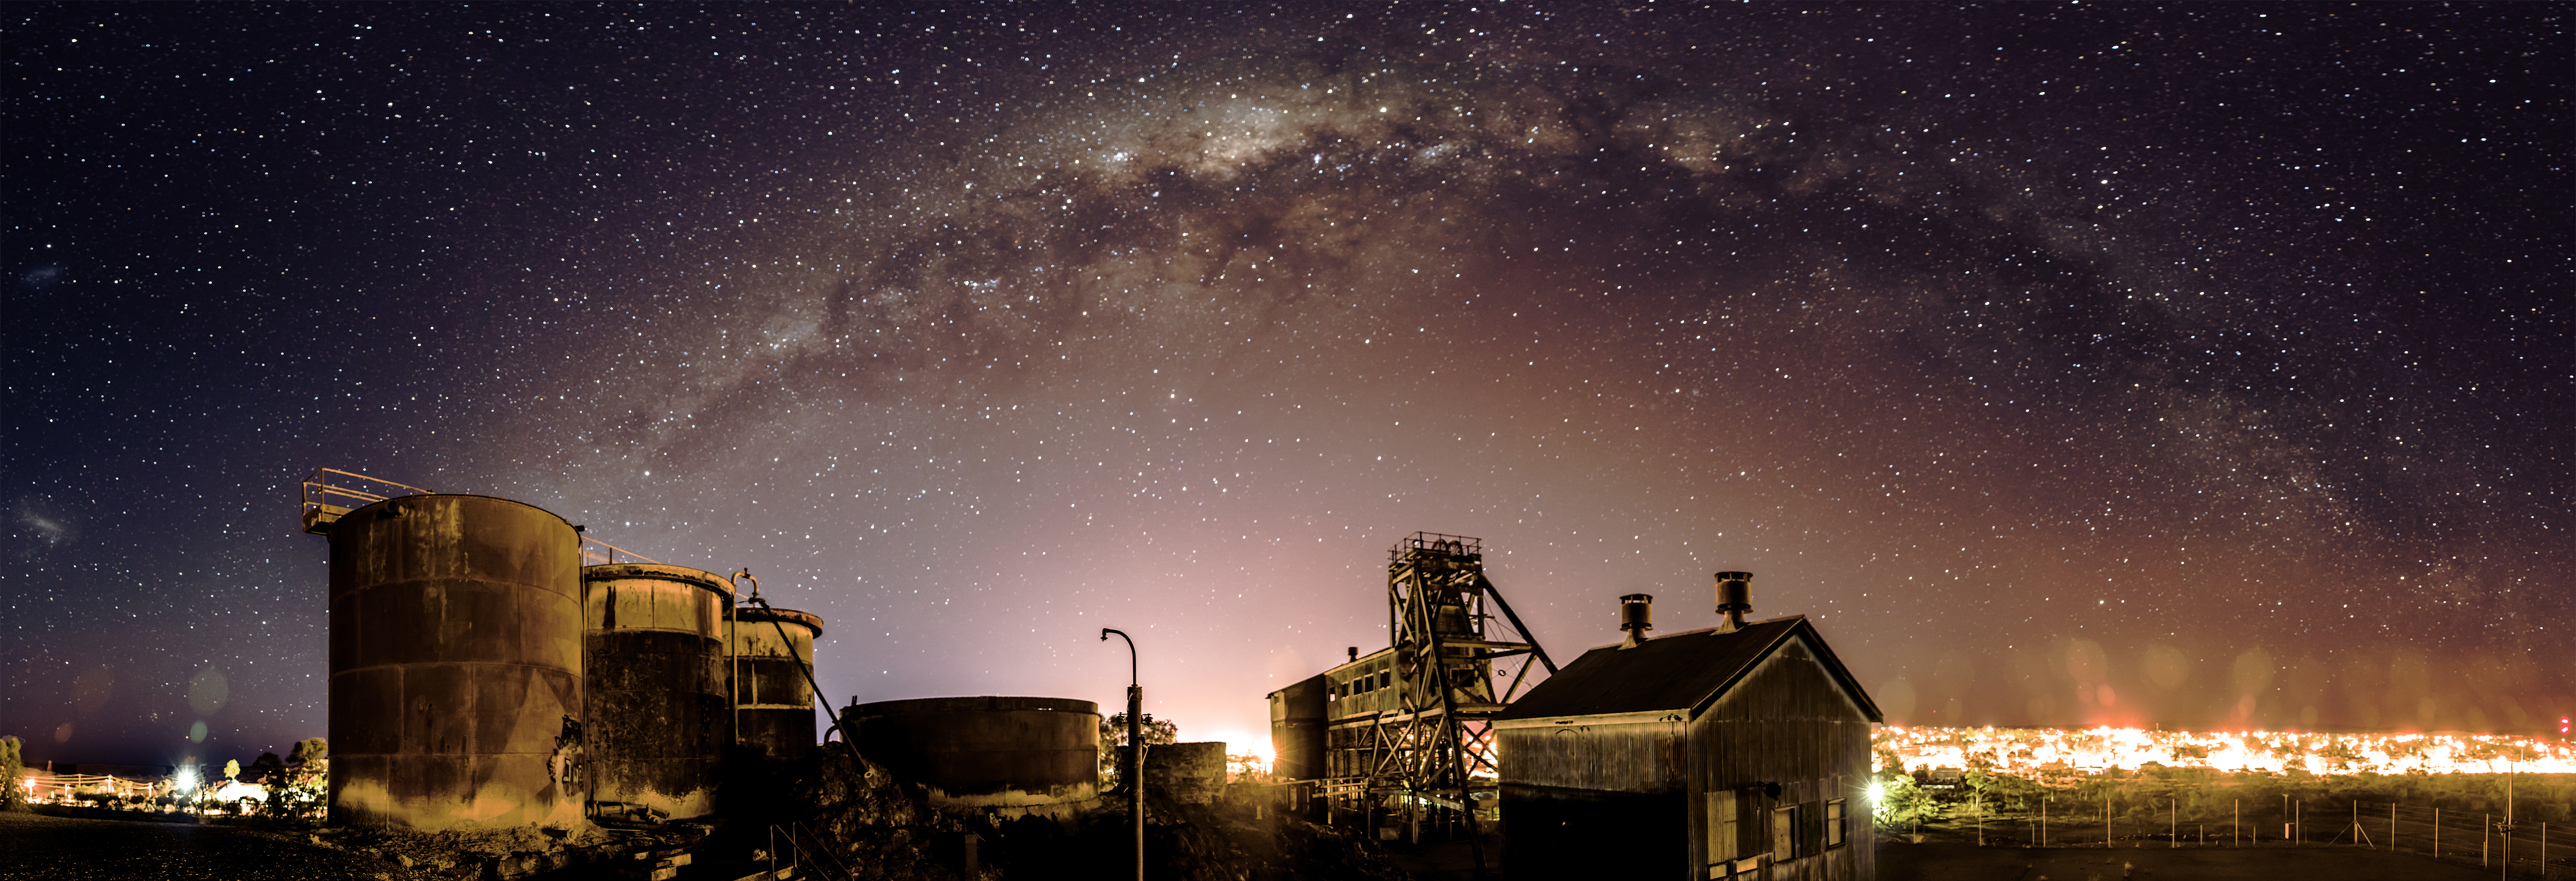 Junction Mine and the Milky Way